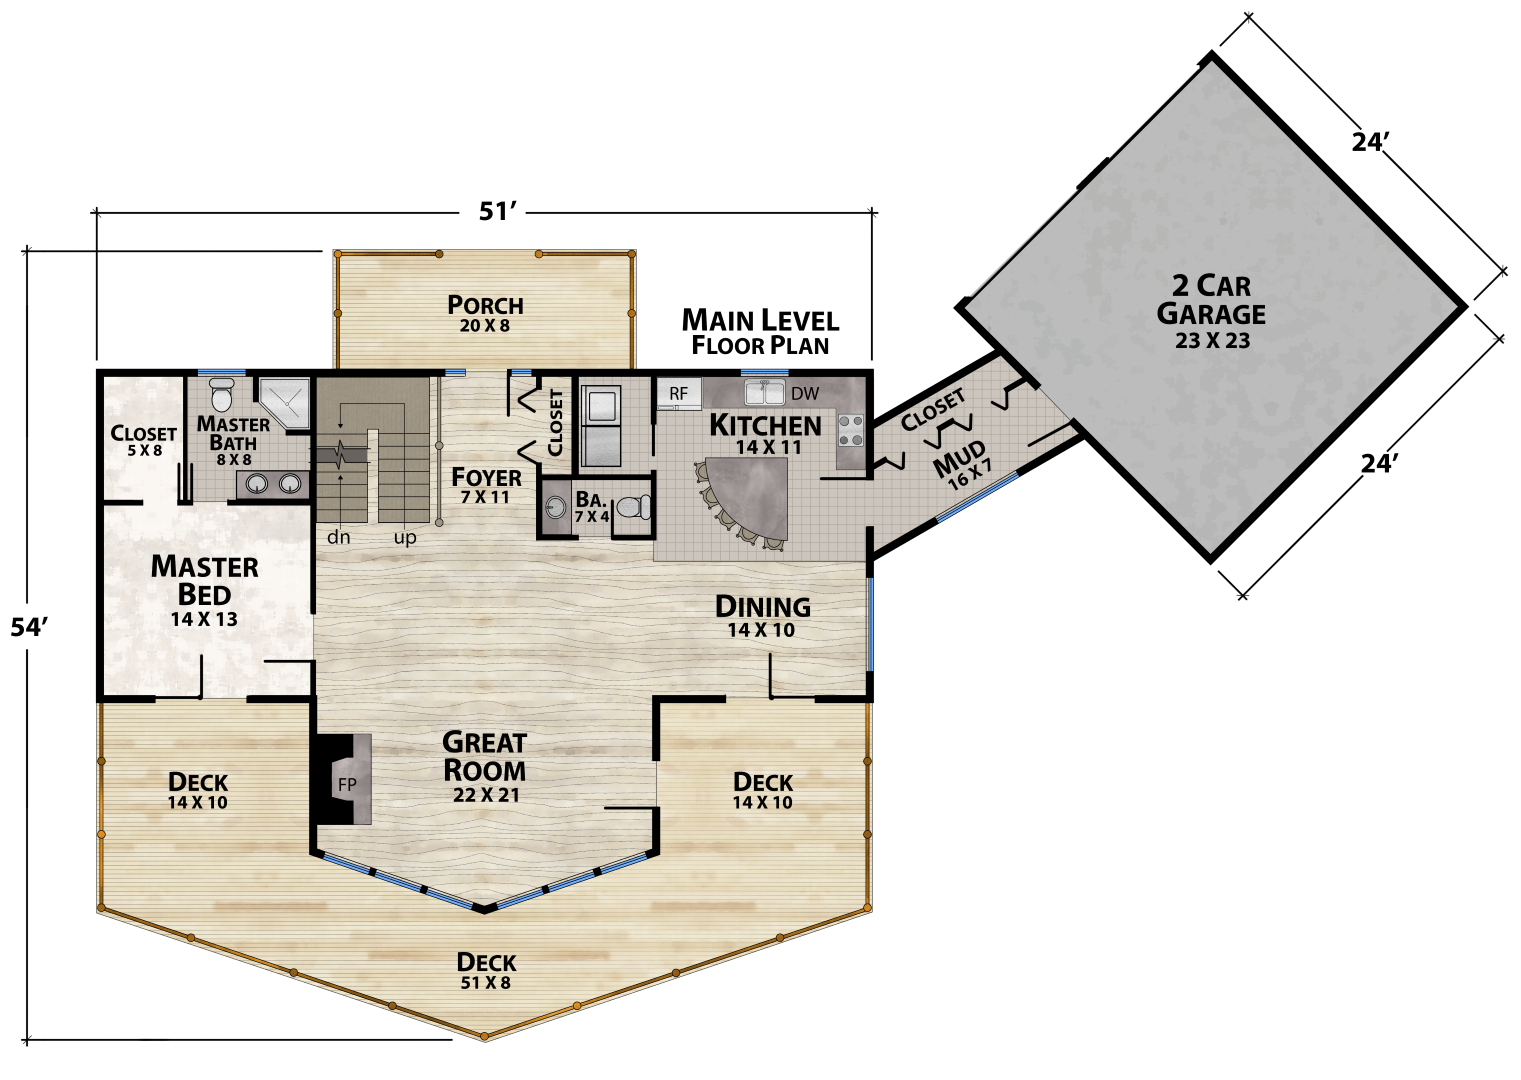 Tucked In Lodge Main Floor Plan by Natural Element Homes